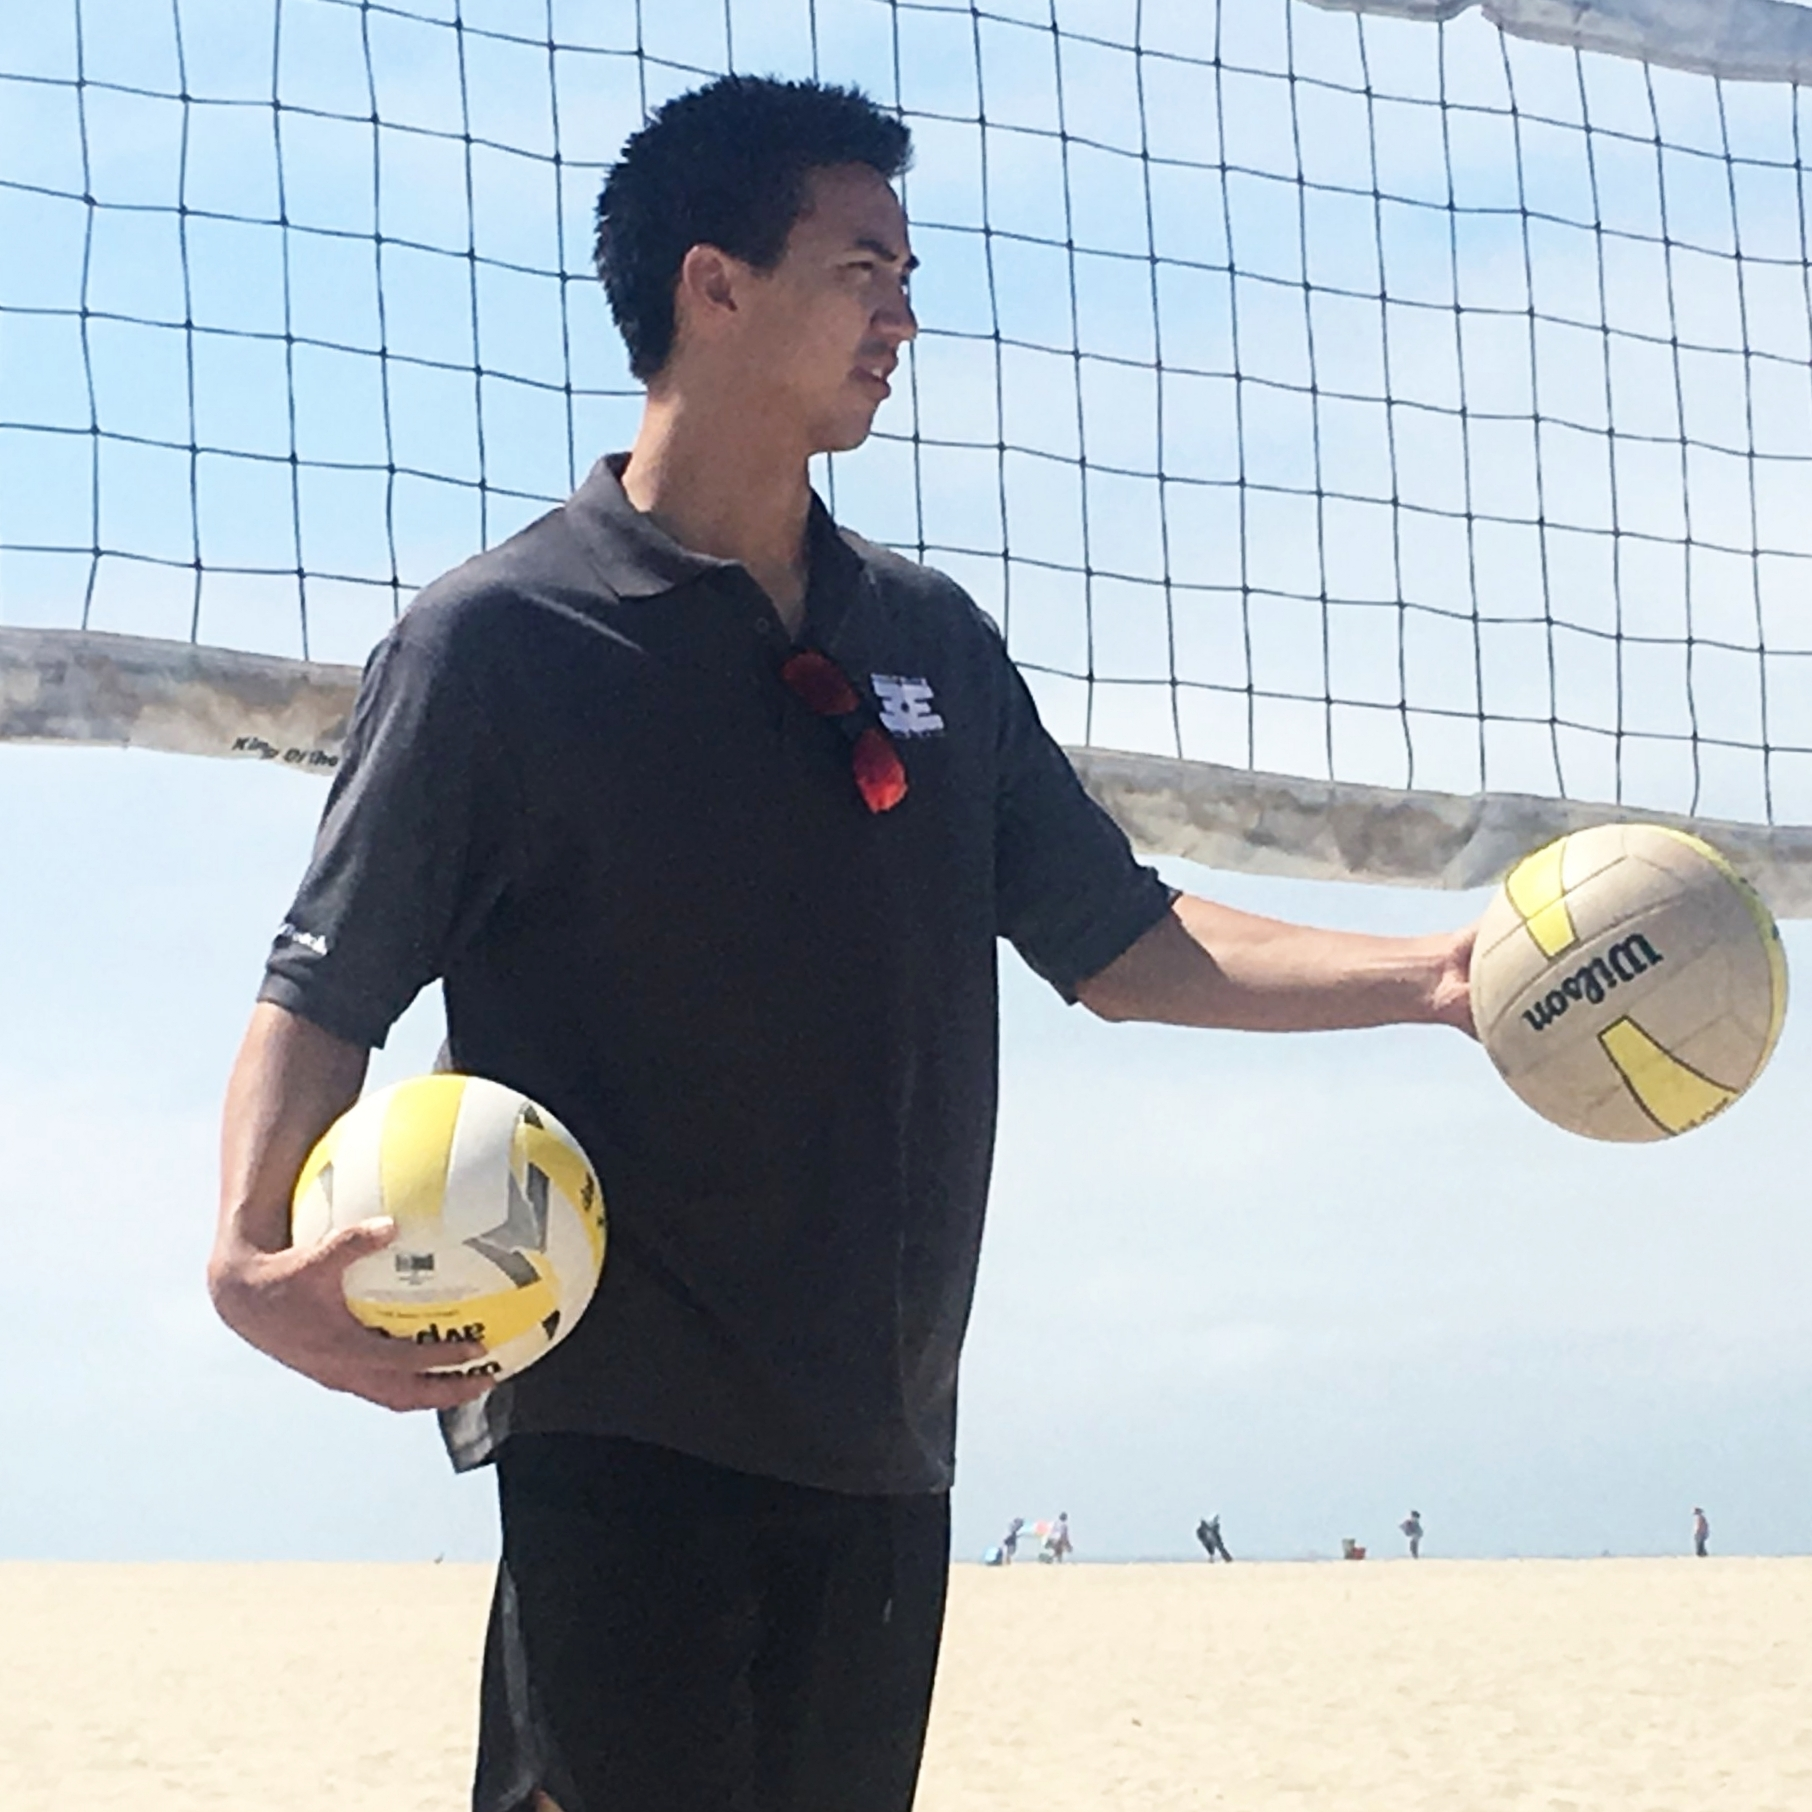 ALVIN TROUNG - *June 2017-Current: Assistant Coach, Estancia High School Girls Varsity Volleyball Team*2017: Head Coach, Estancia High Schools Girls JV Volleyball Team*2017: Head Coach, Beach Elite Summer Camps*College: California State University, Long Beach